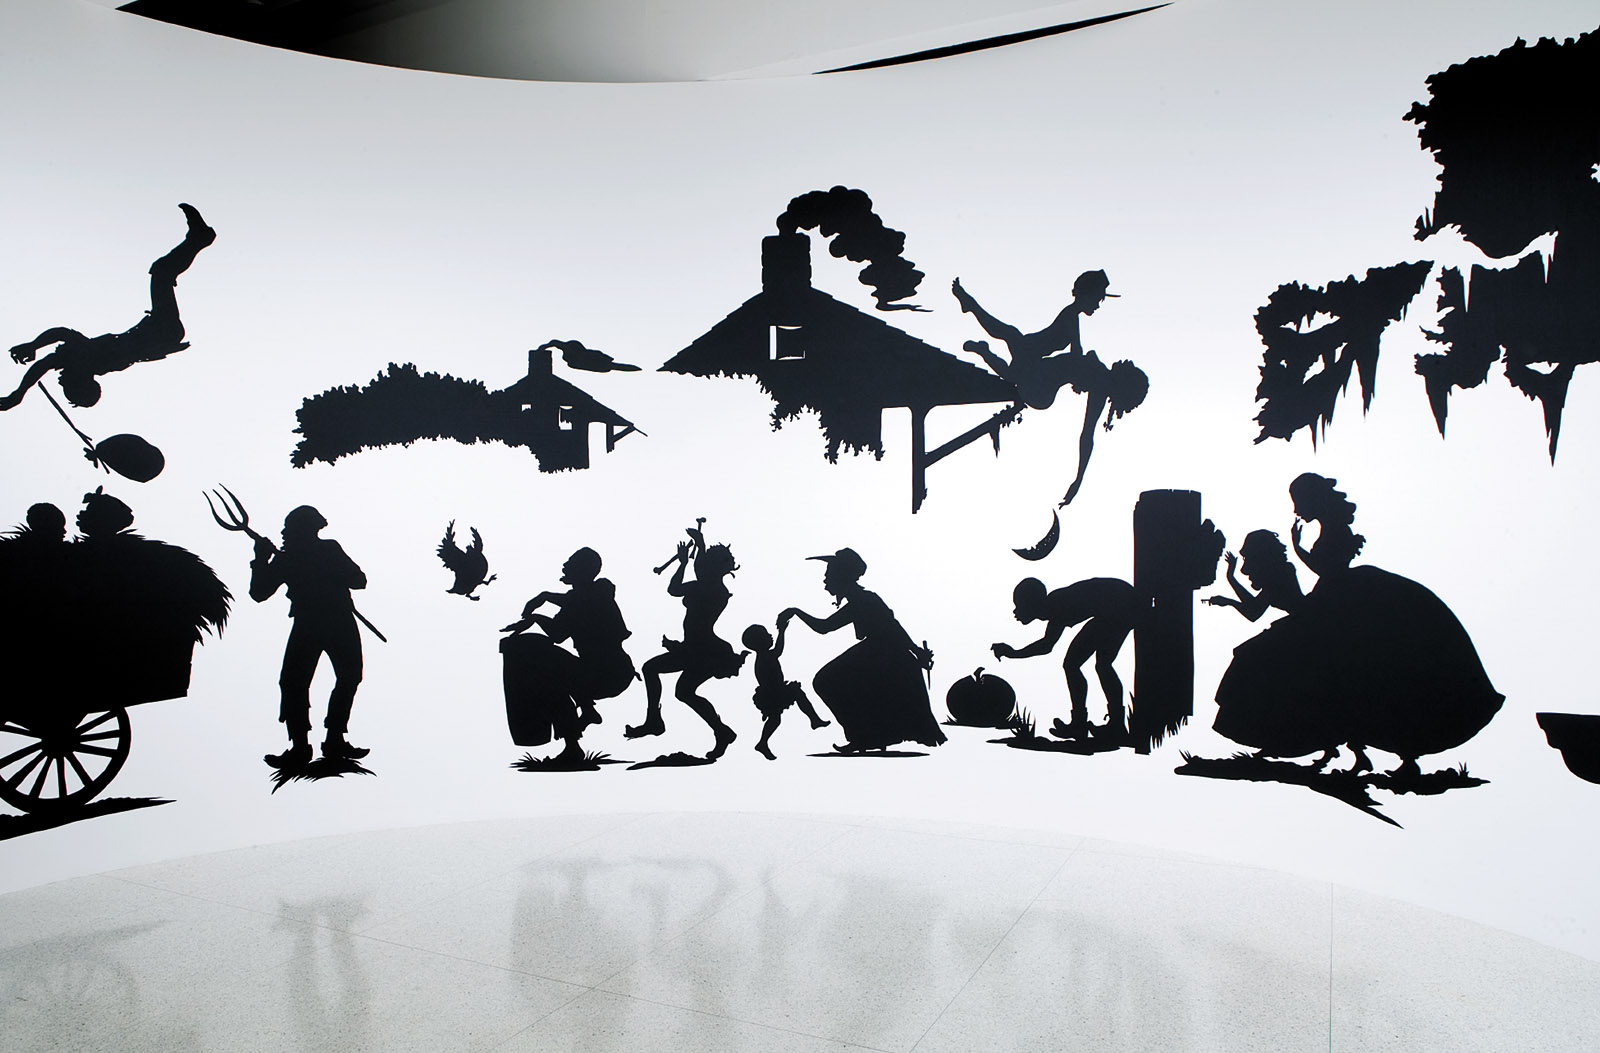 "Slavery! Slavery! Presenting a GRAND and LIFELIKE Panoramic Journey into Picturesque Southern Slavery or 'Life at ""Ol' Virginny's Hole"" (sketches from Plantation Life)' See the Peculiar Institution as never before! All cut from black paper by the able hand of Kara Elizabeth Walker, an Emancipated Negress and leader in her Cause, 1997; installation by Kara Walker"